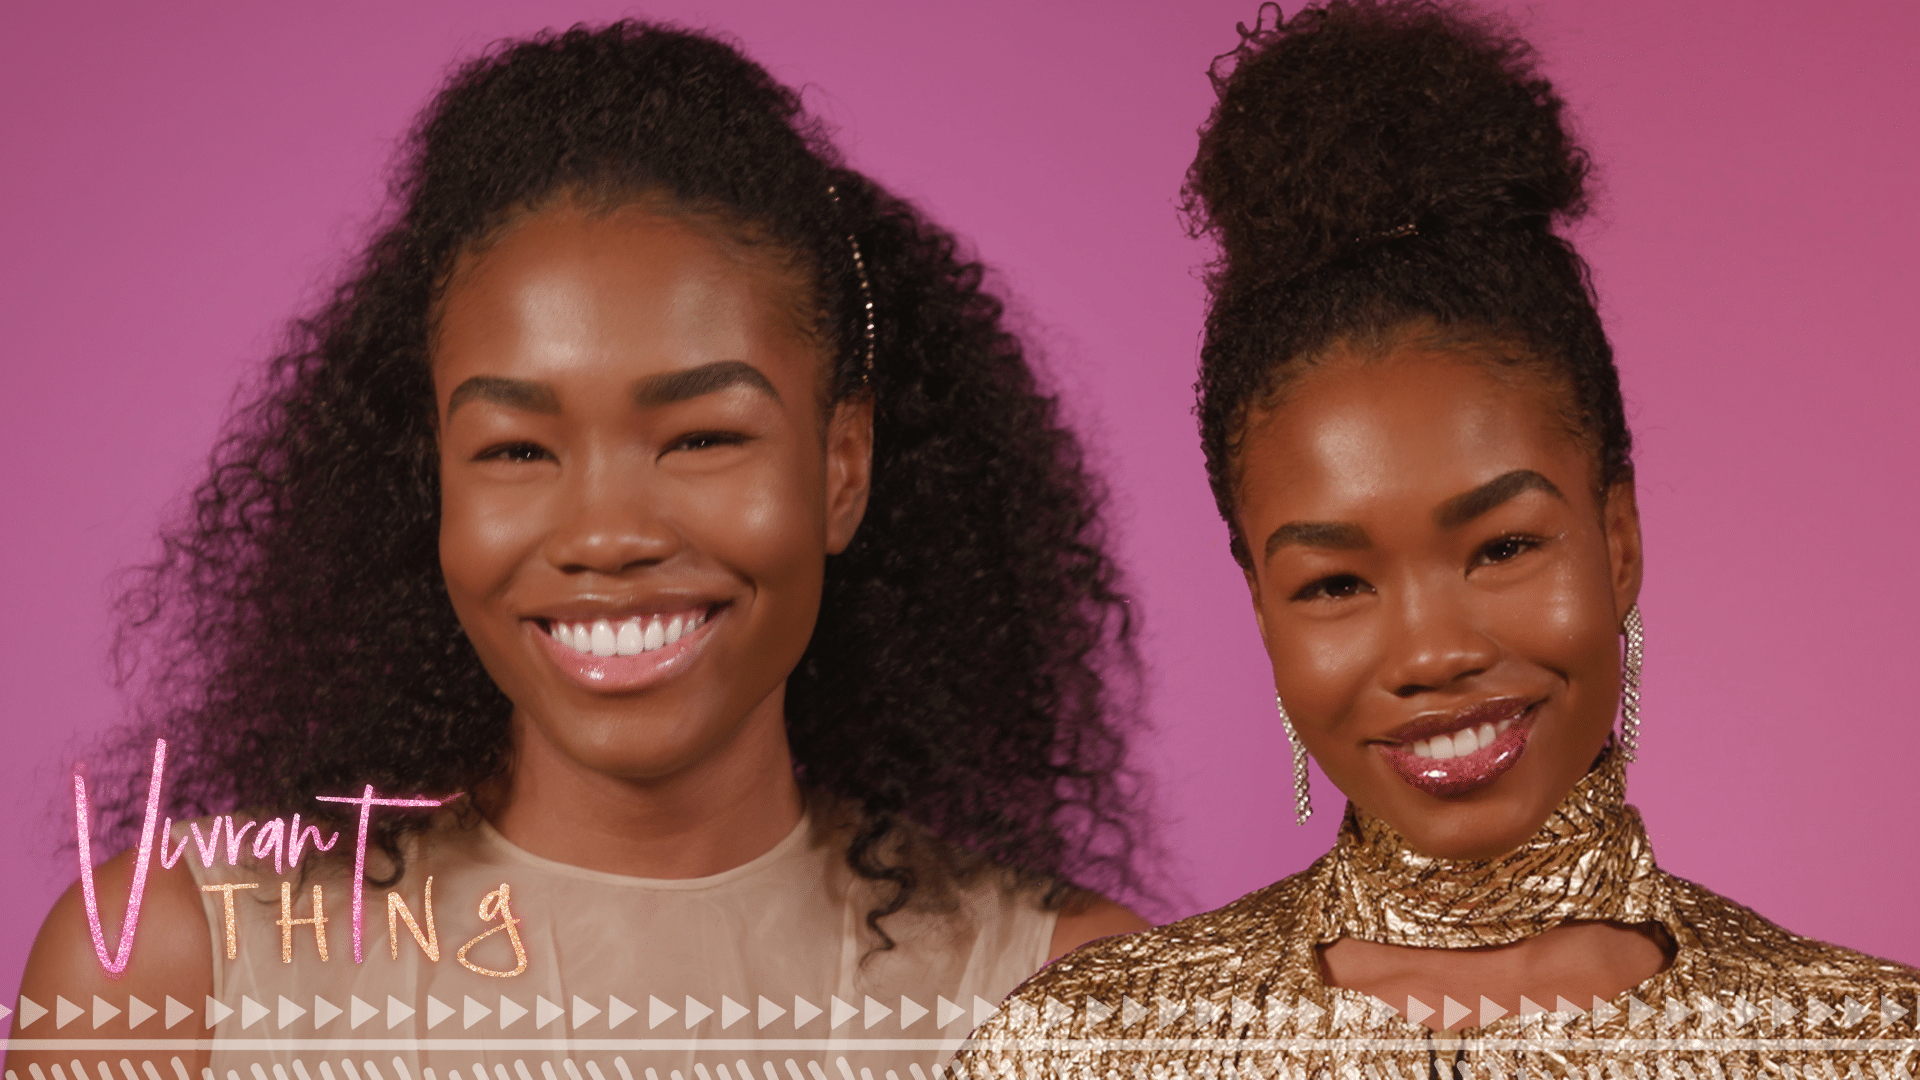 Watch Vivrant Thing: Enhance Your Natural Glow With This '2 Ways 2 Shine' Tutorial